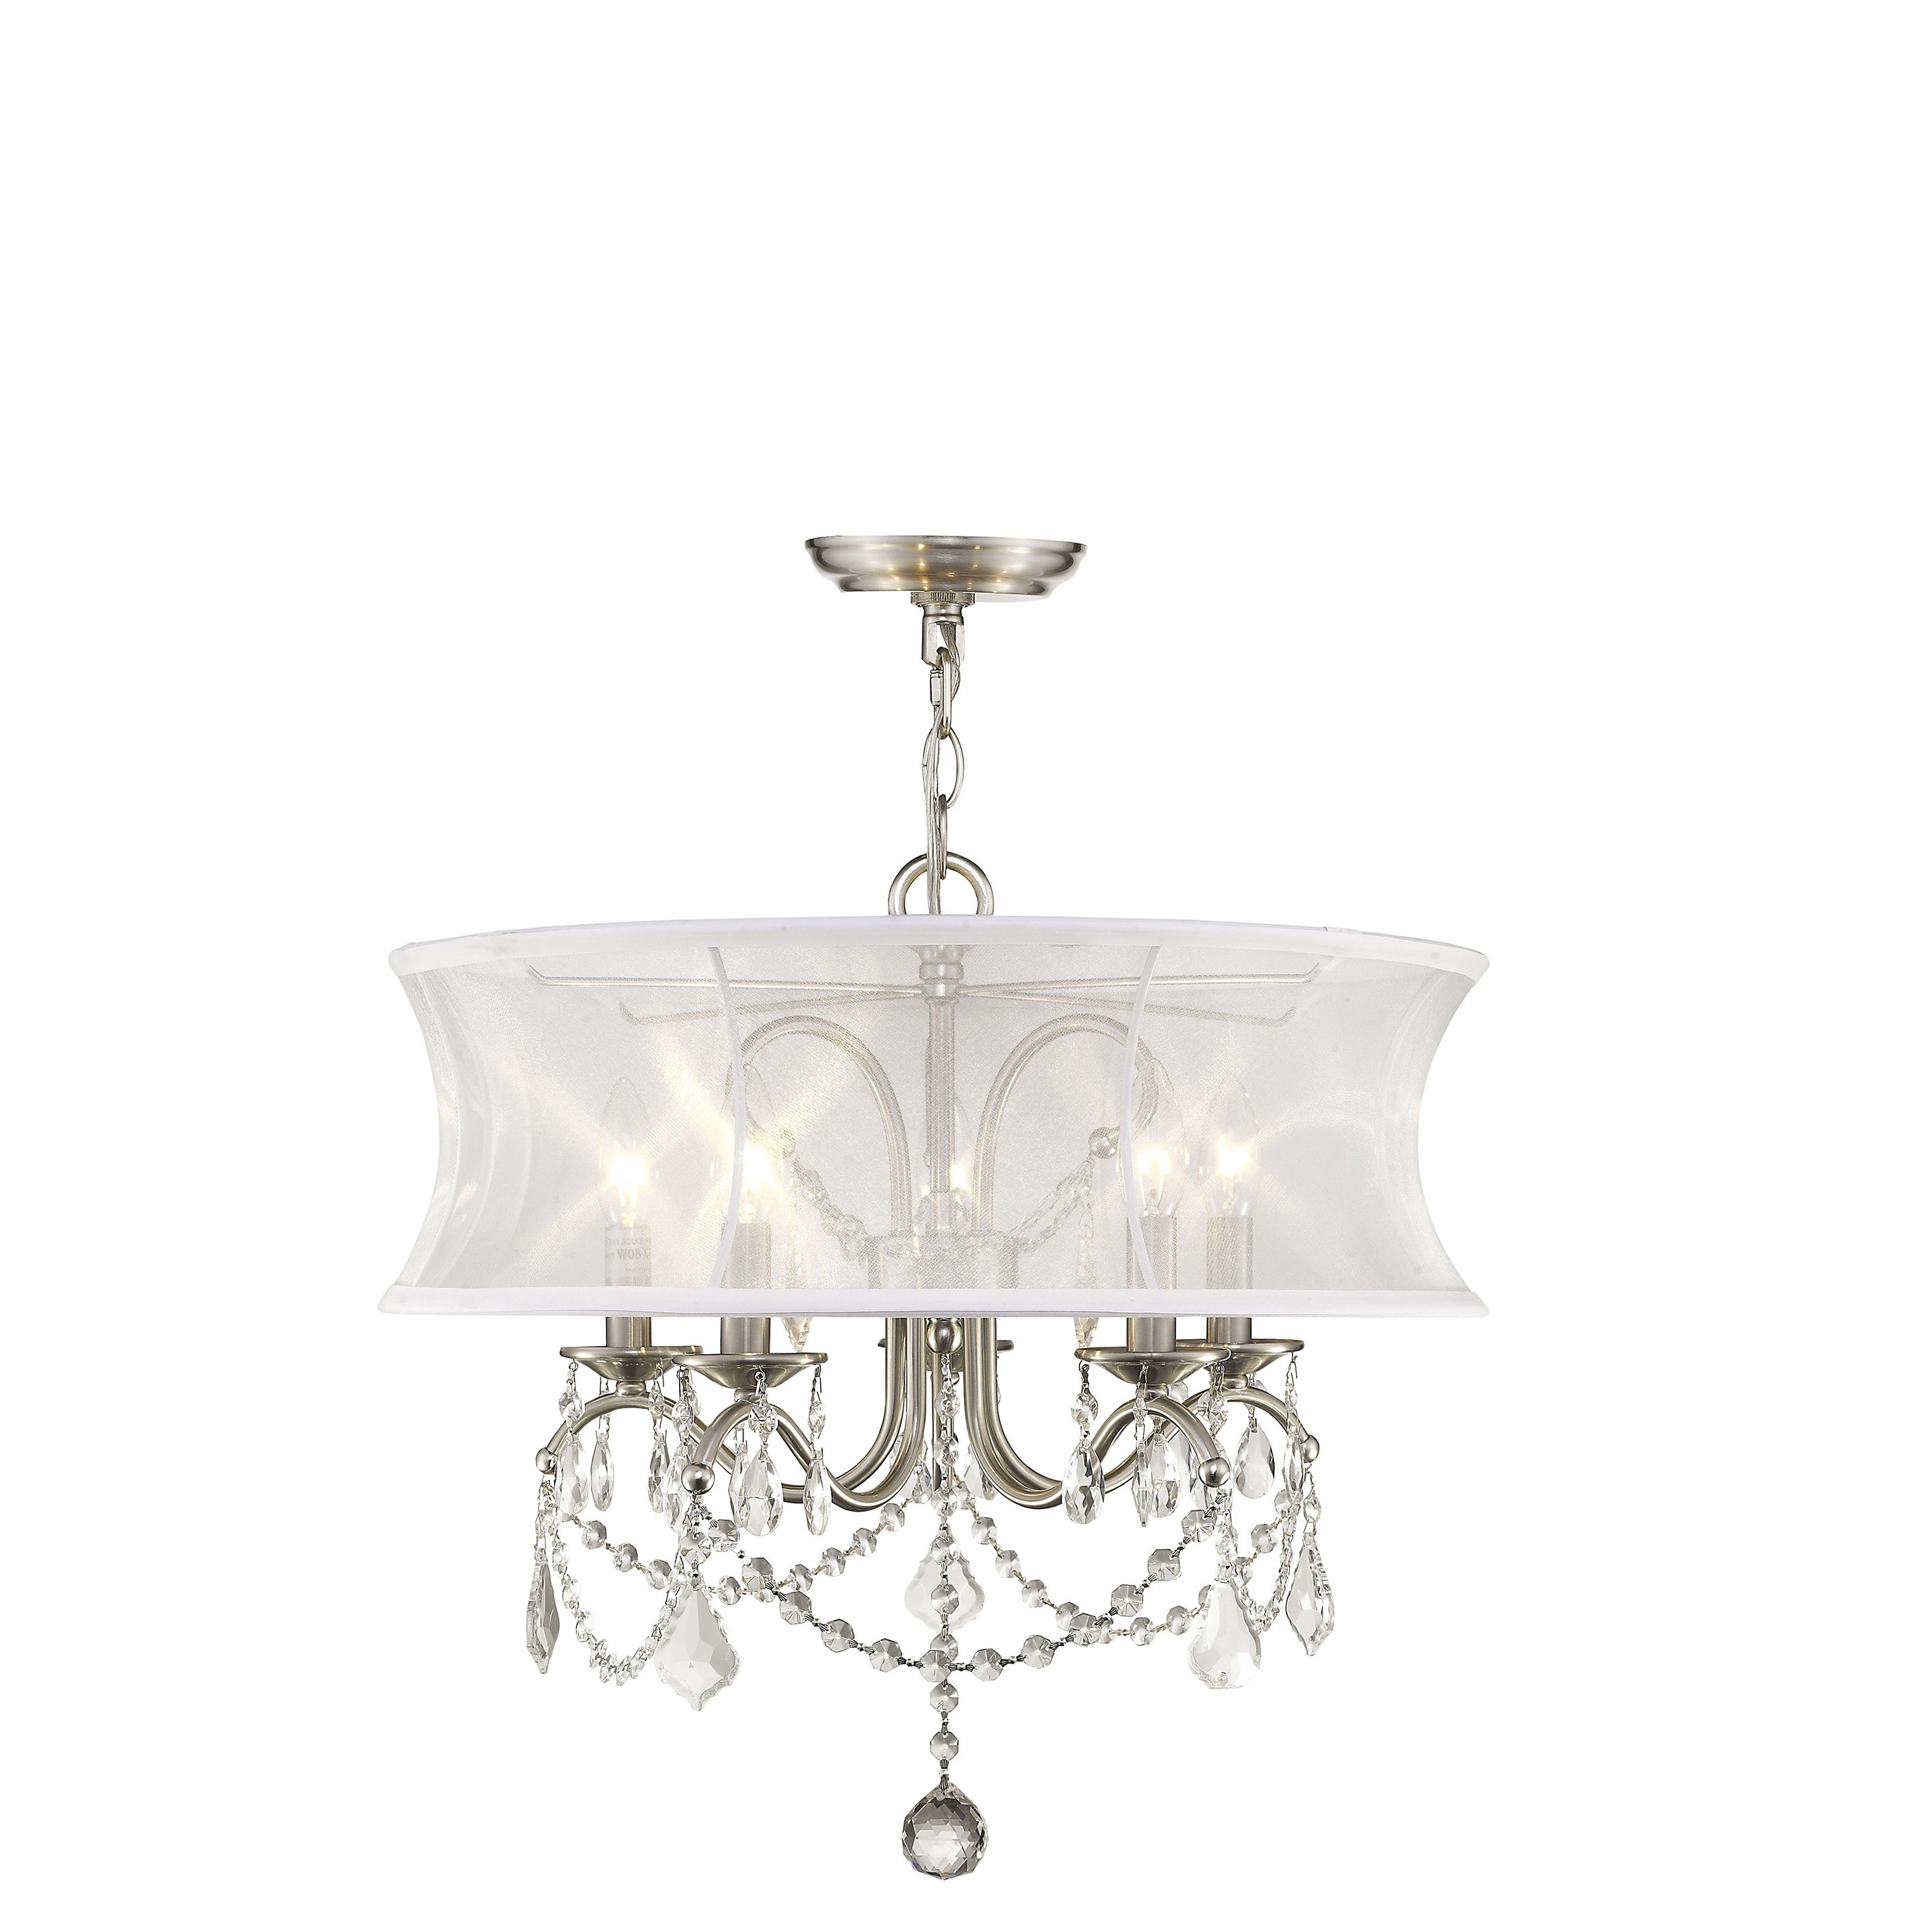 Abel 5 Light Drum Chandeliers With Well Liked Willa Arlo Interiors Aubrianne Drum Chandelier (Gallery 18 of 20)